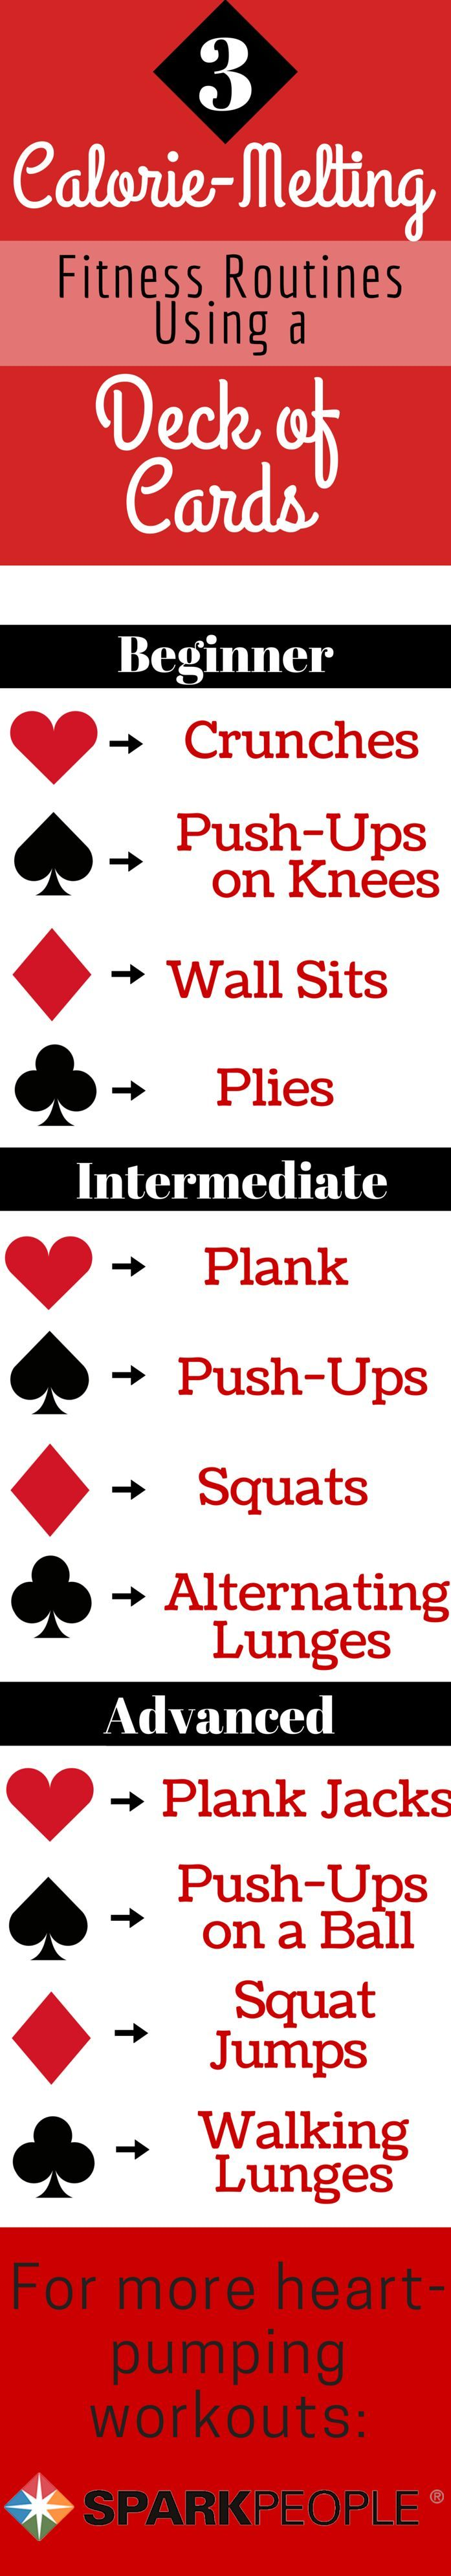 Ace Your Next Workout with a Deck of Cards. Stuck in a rut? Your next workout is just a deck of cards away! | via @SparkPeople